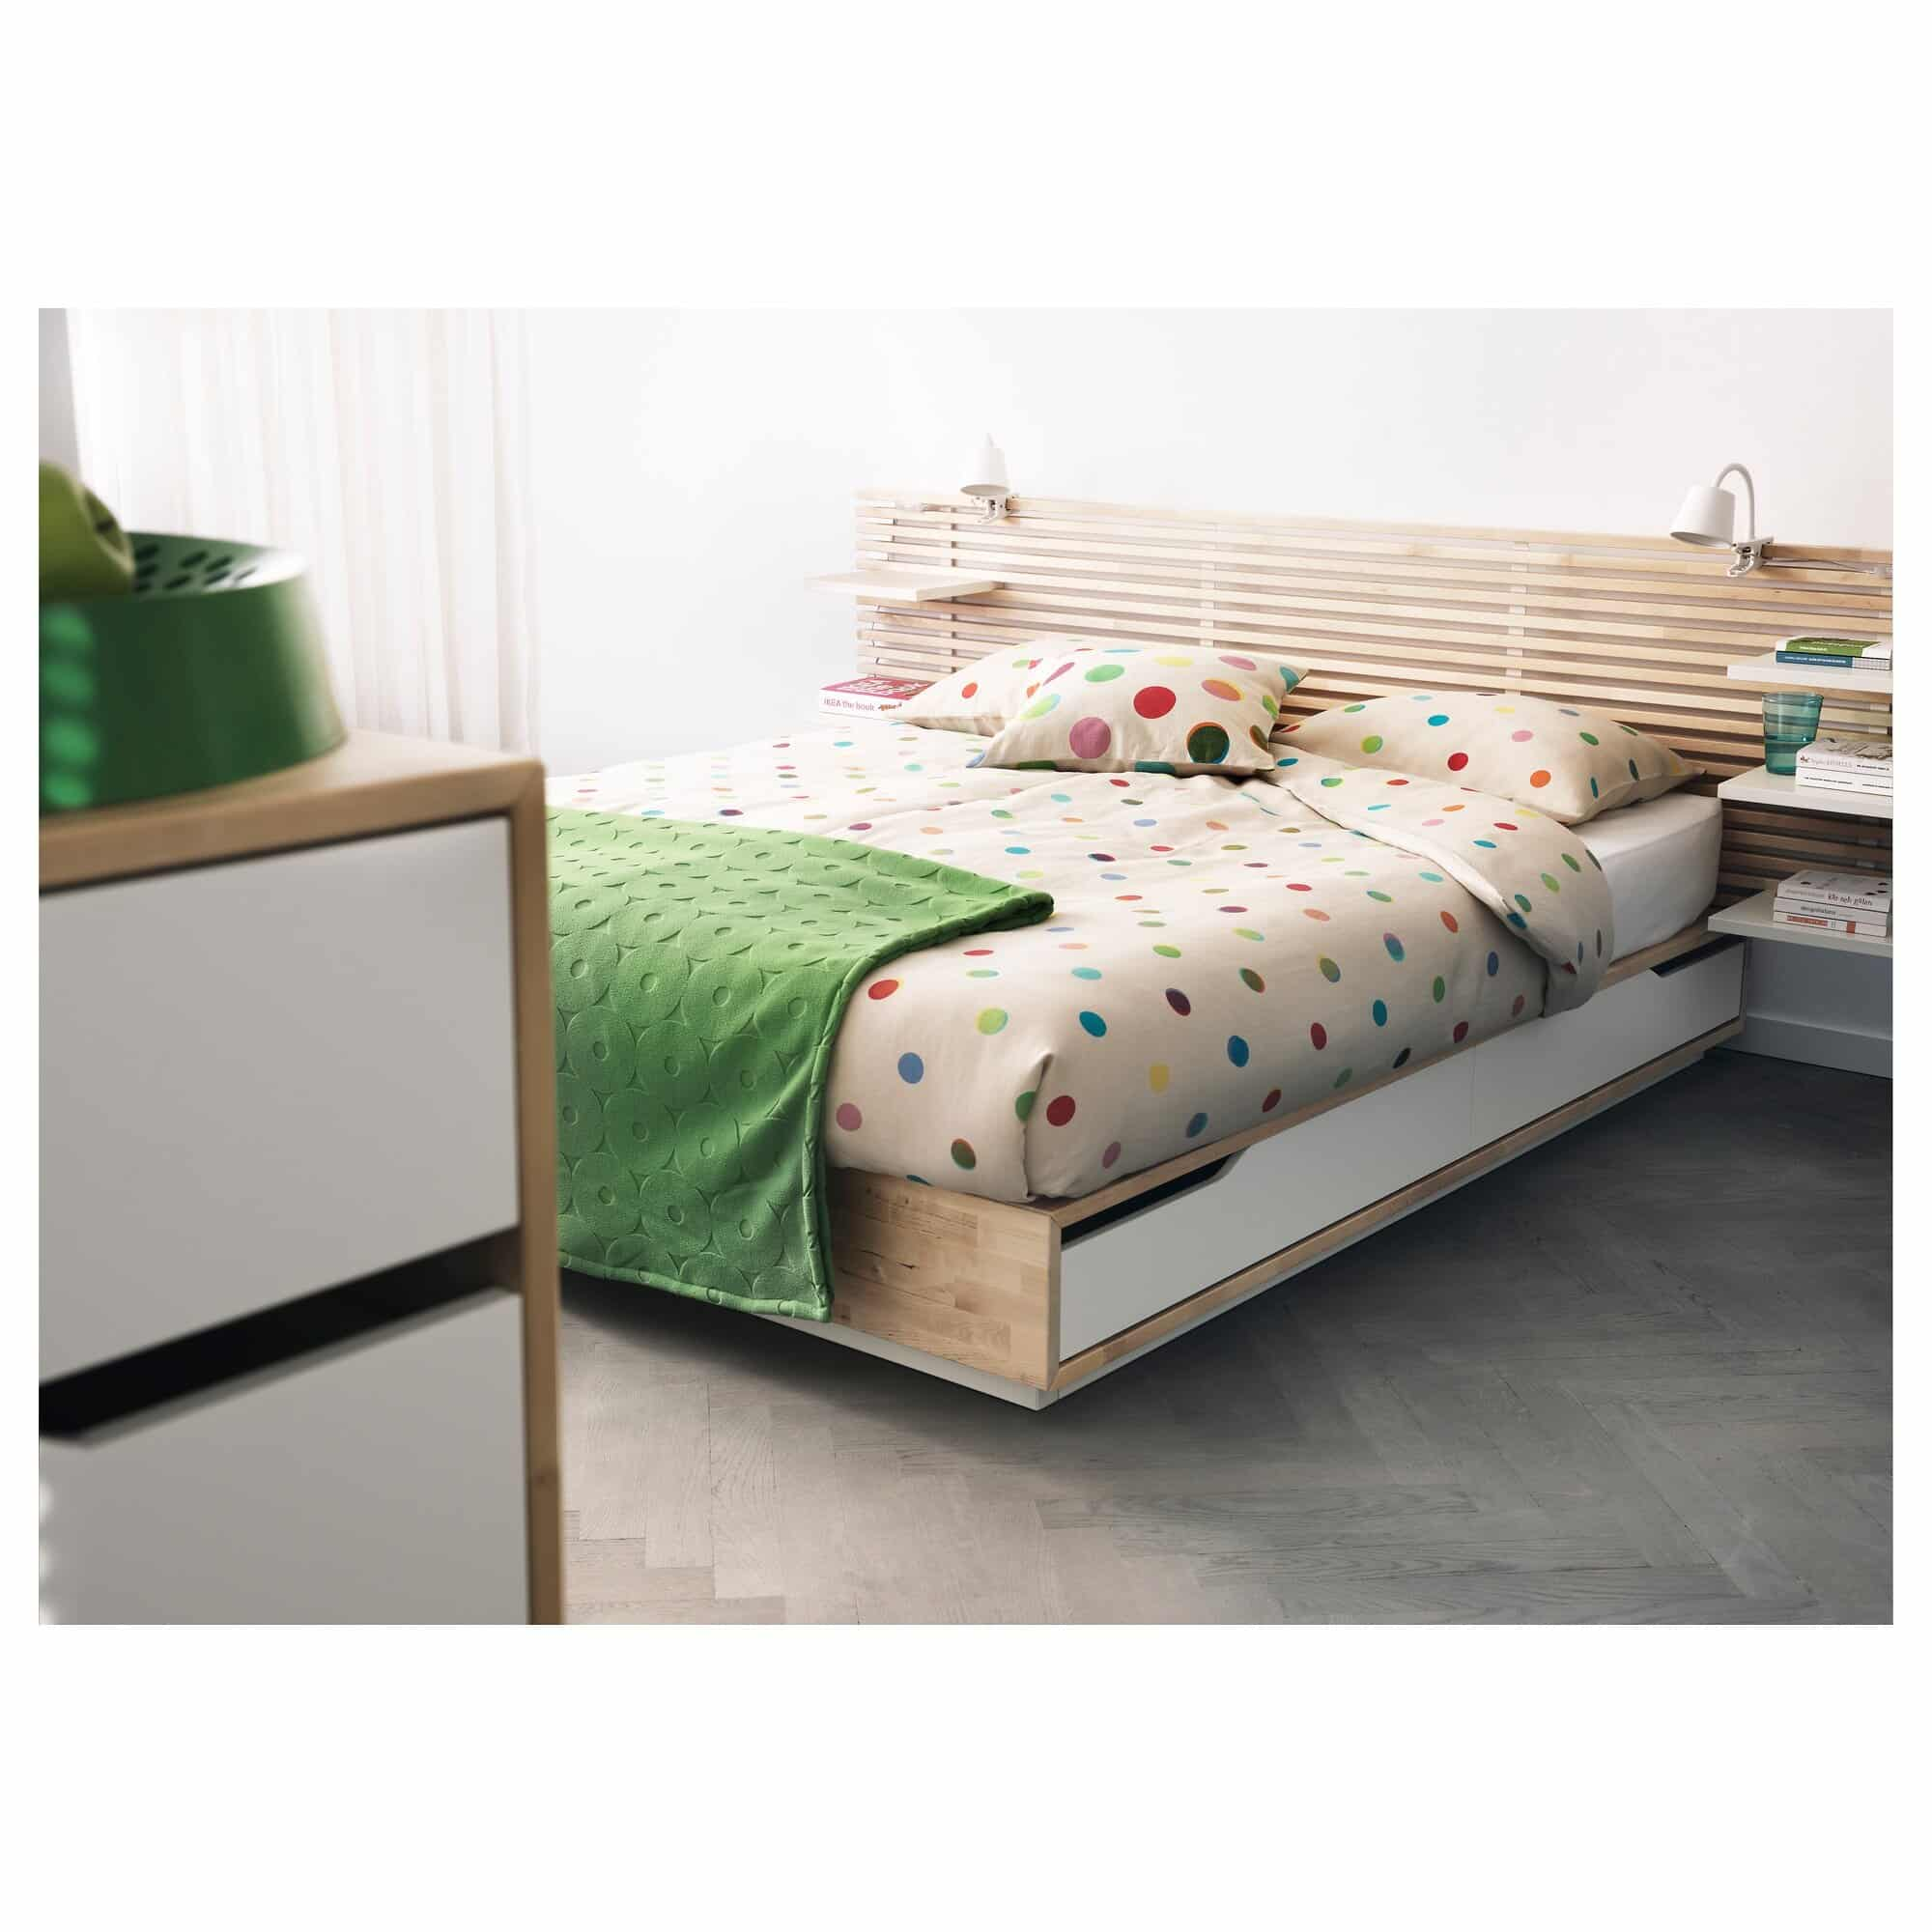 A more advanced wooden bedframe by IKEA